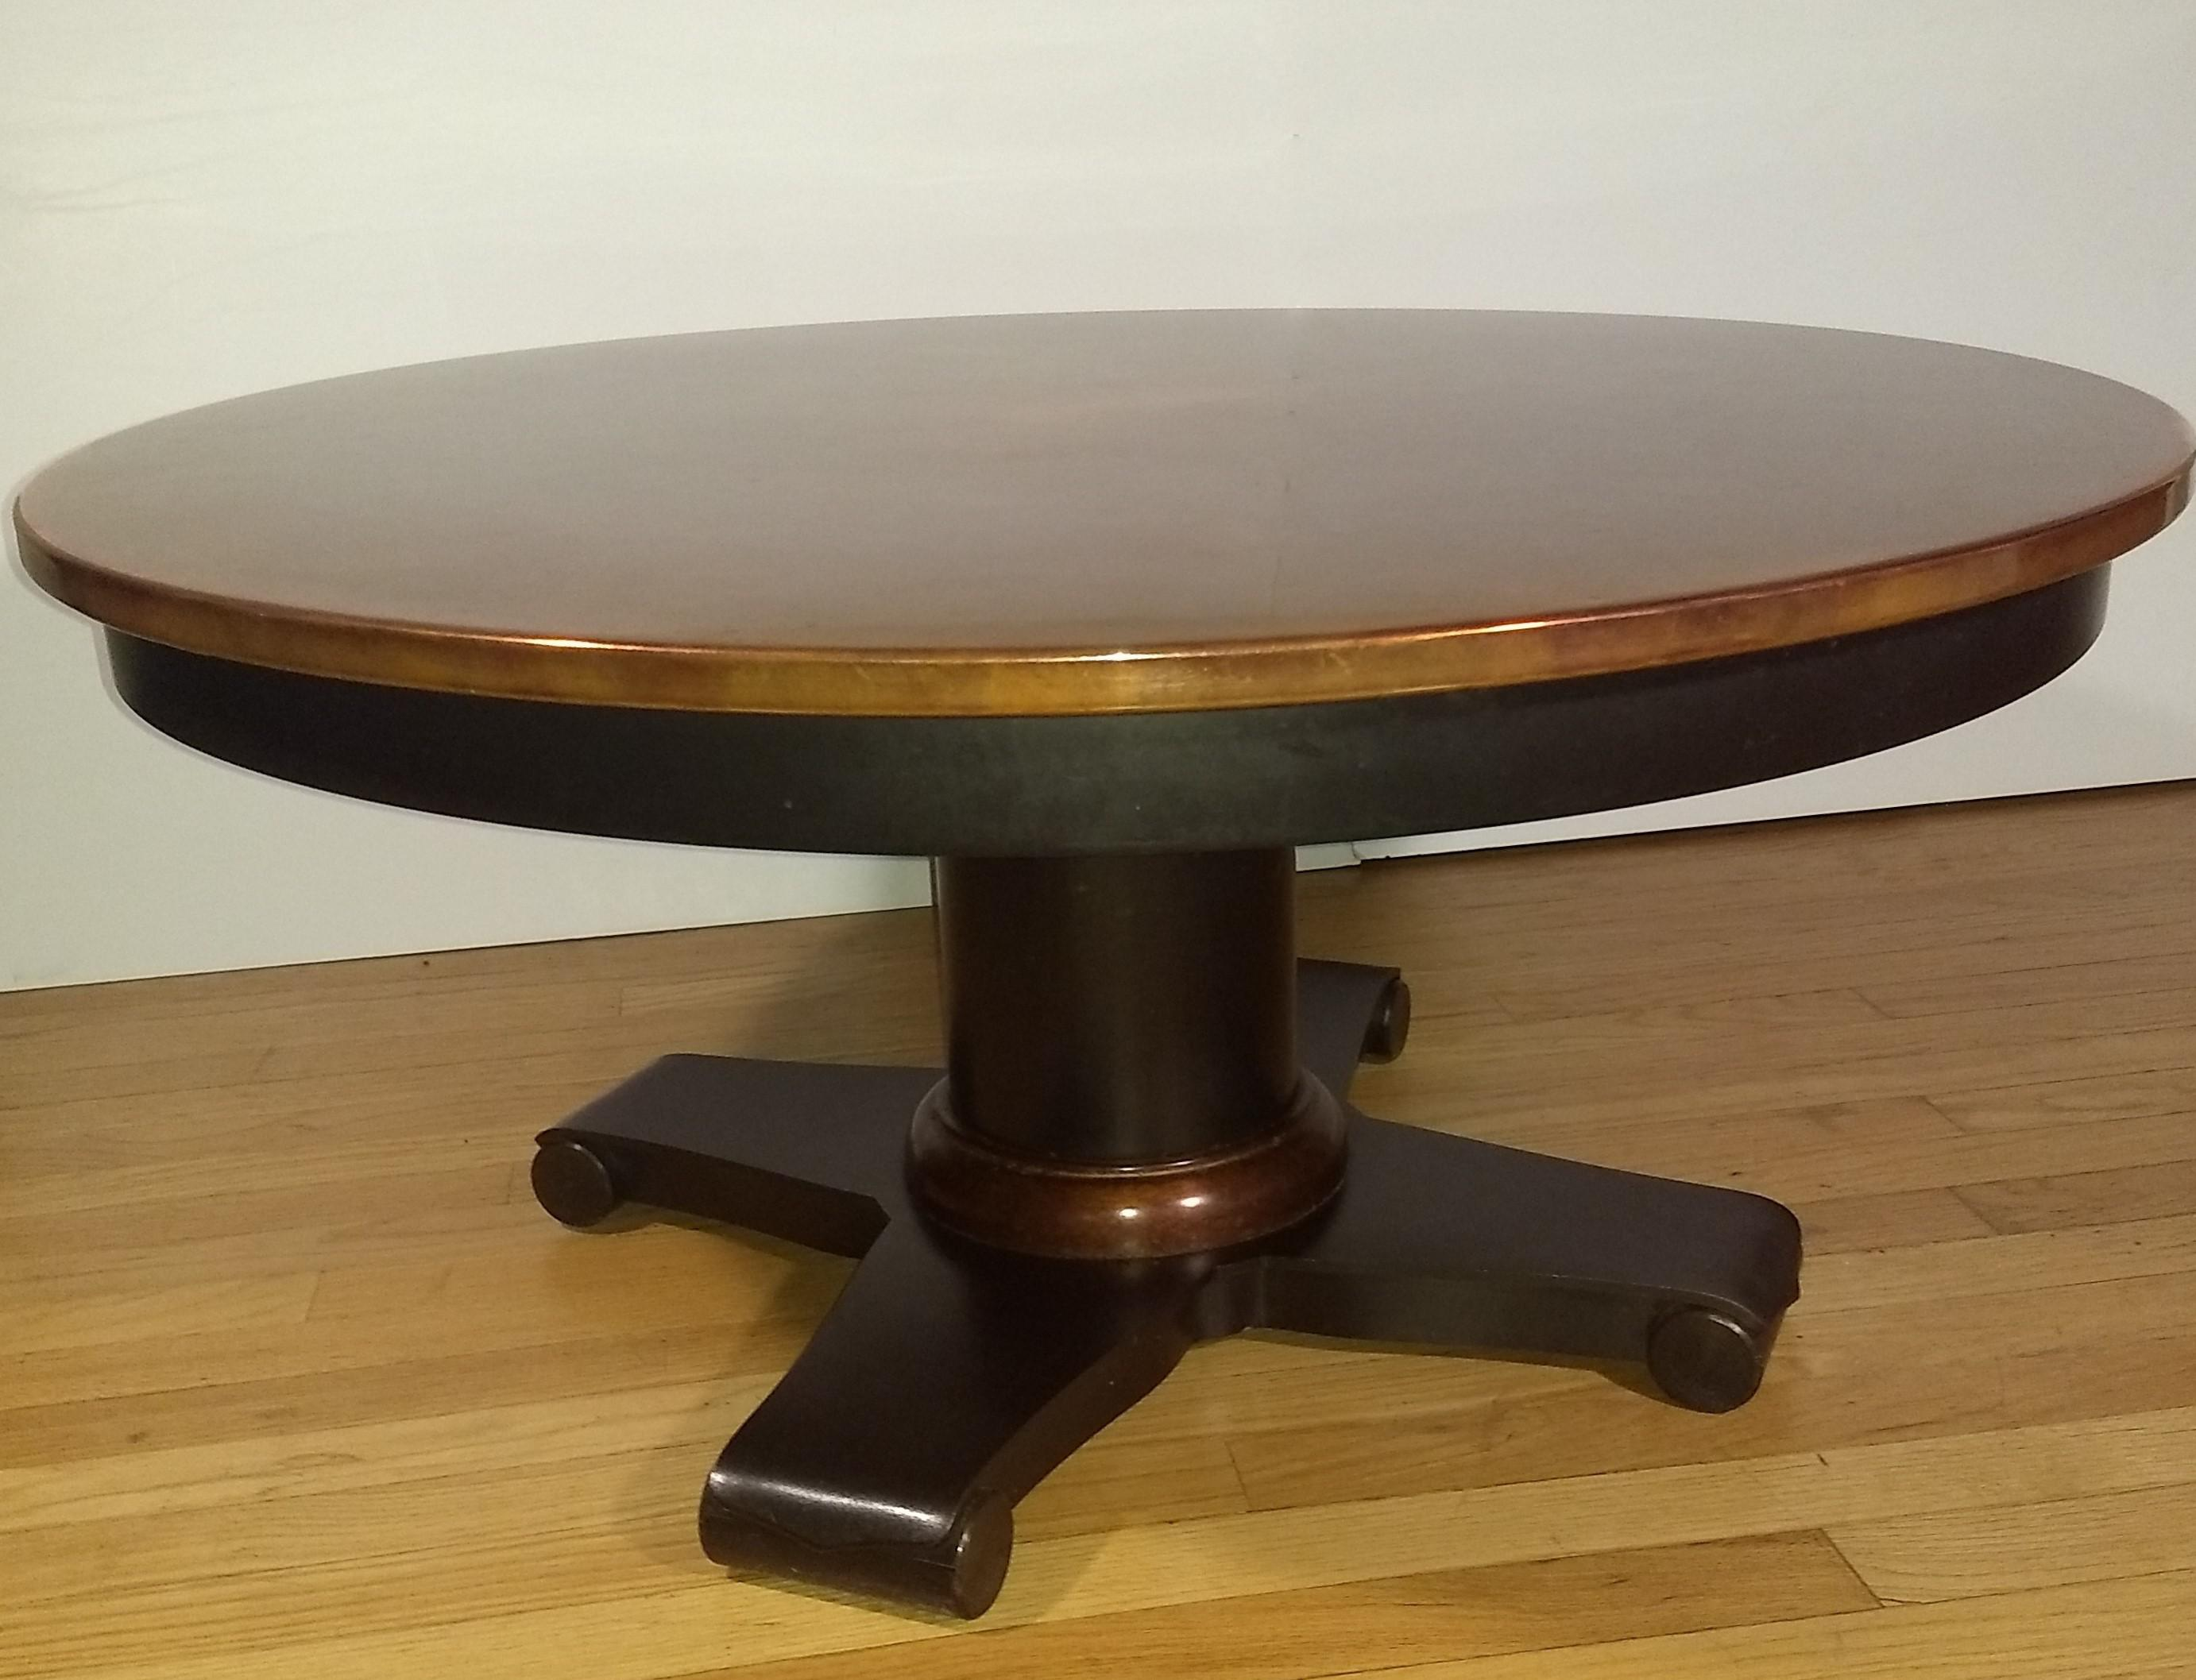 crate barrel collina round copper topped coffee table with black metal base